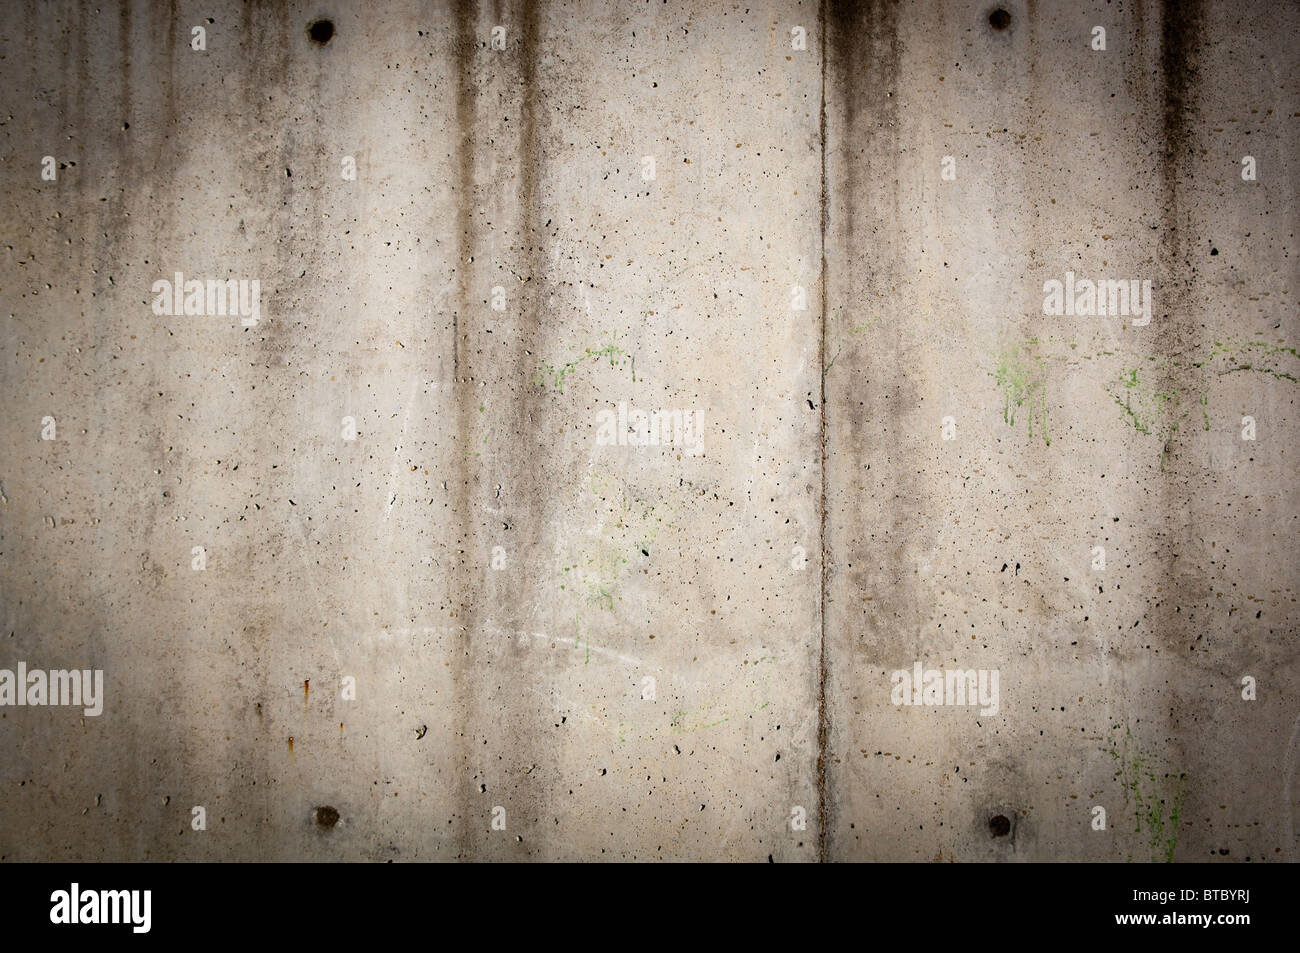 Tall concrete wall in rough, gunge style with stains and wear - Stock Image